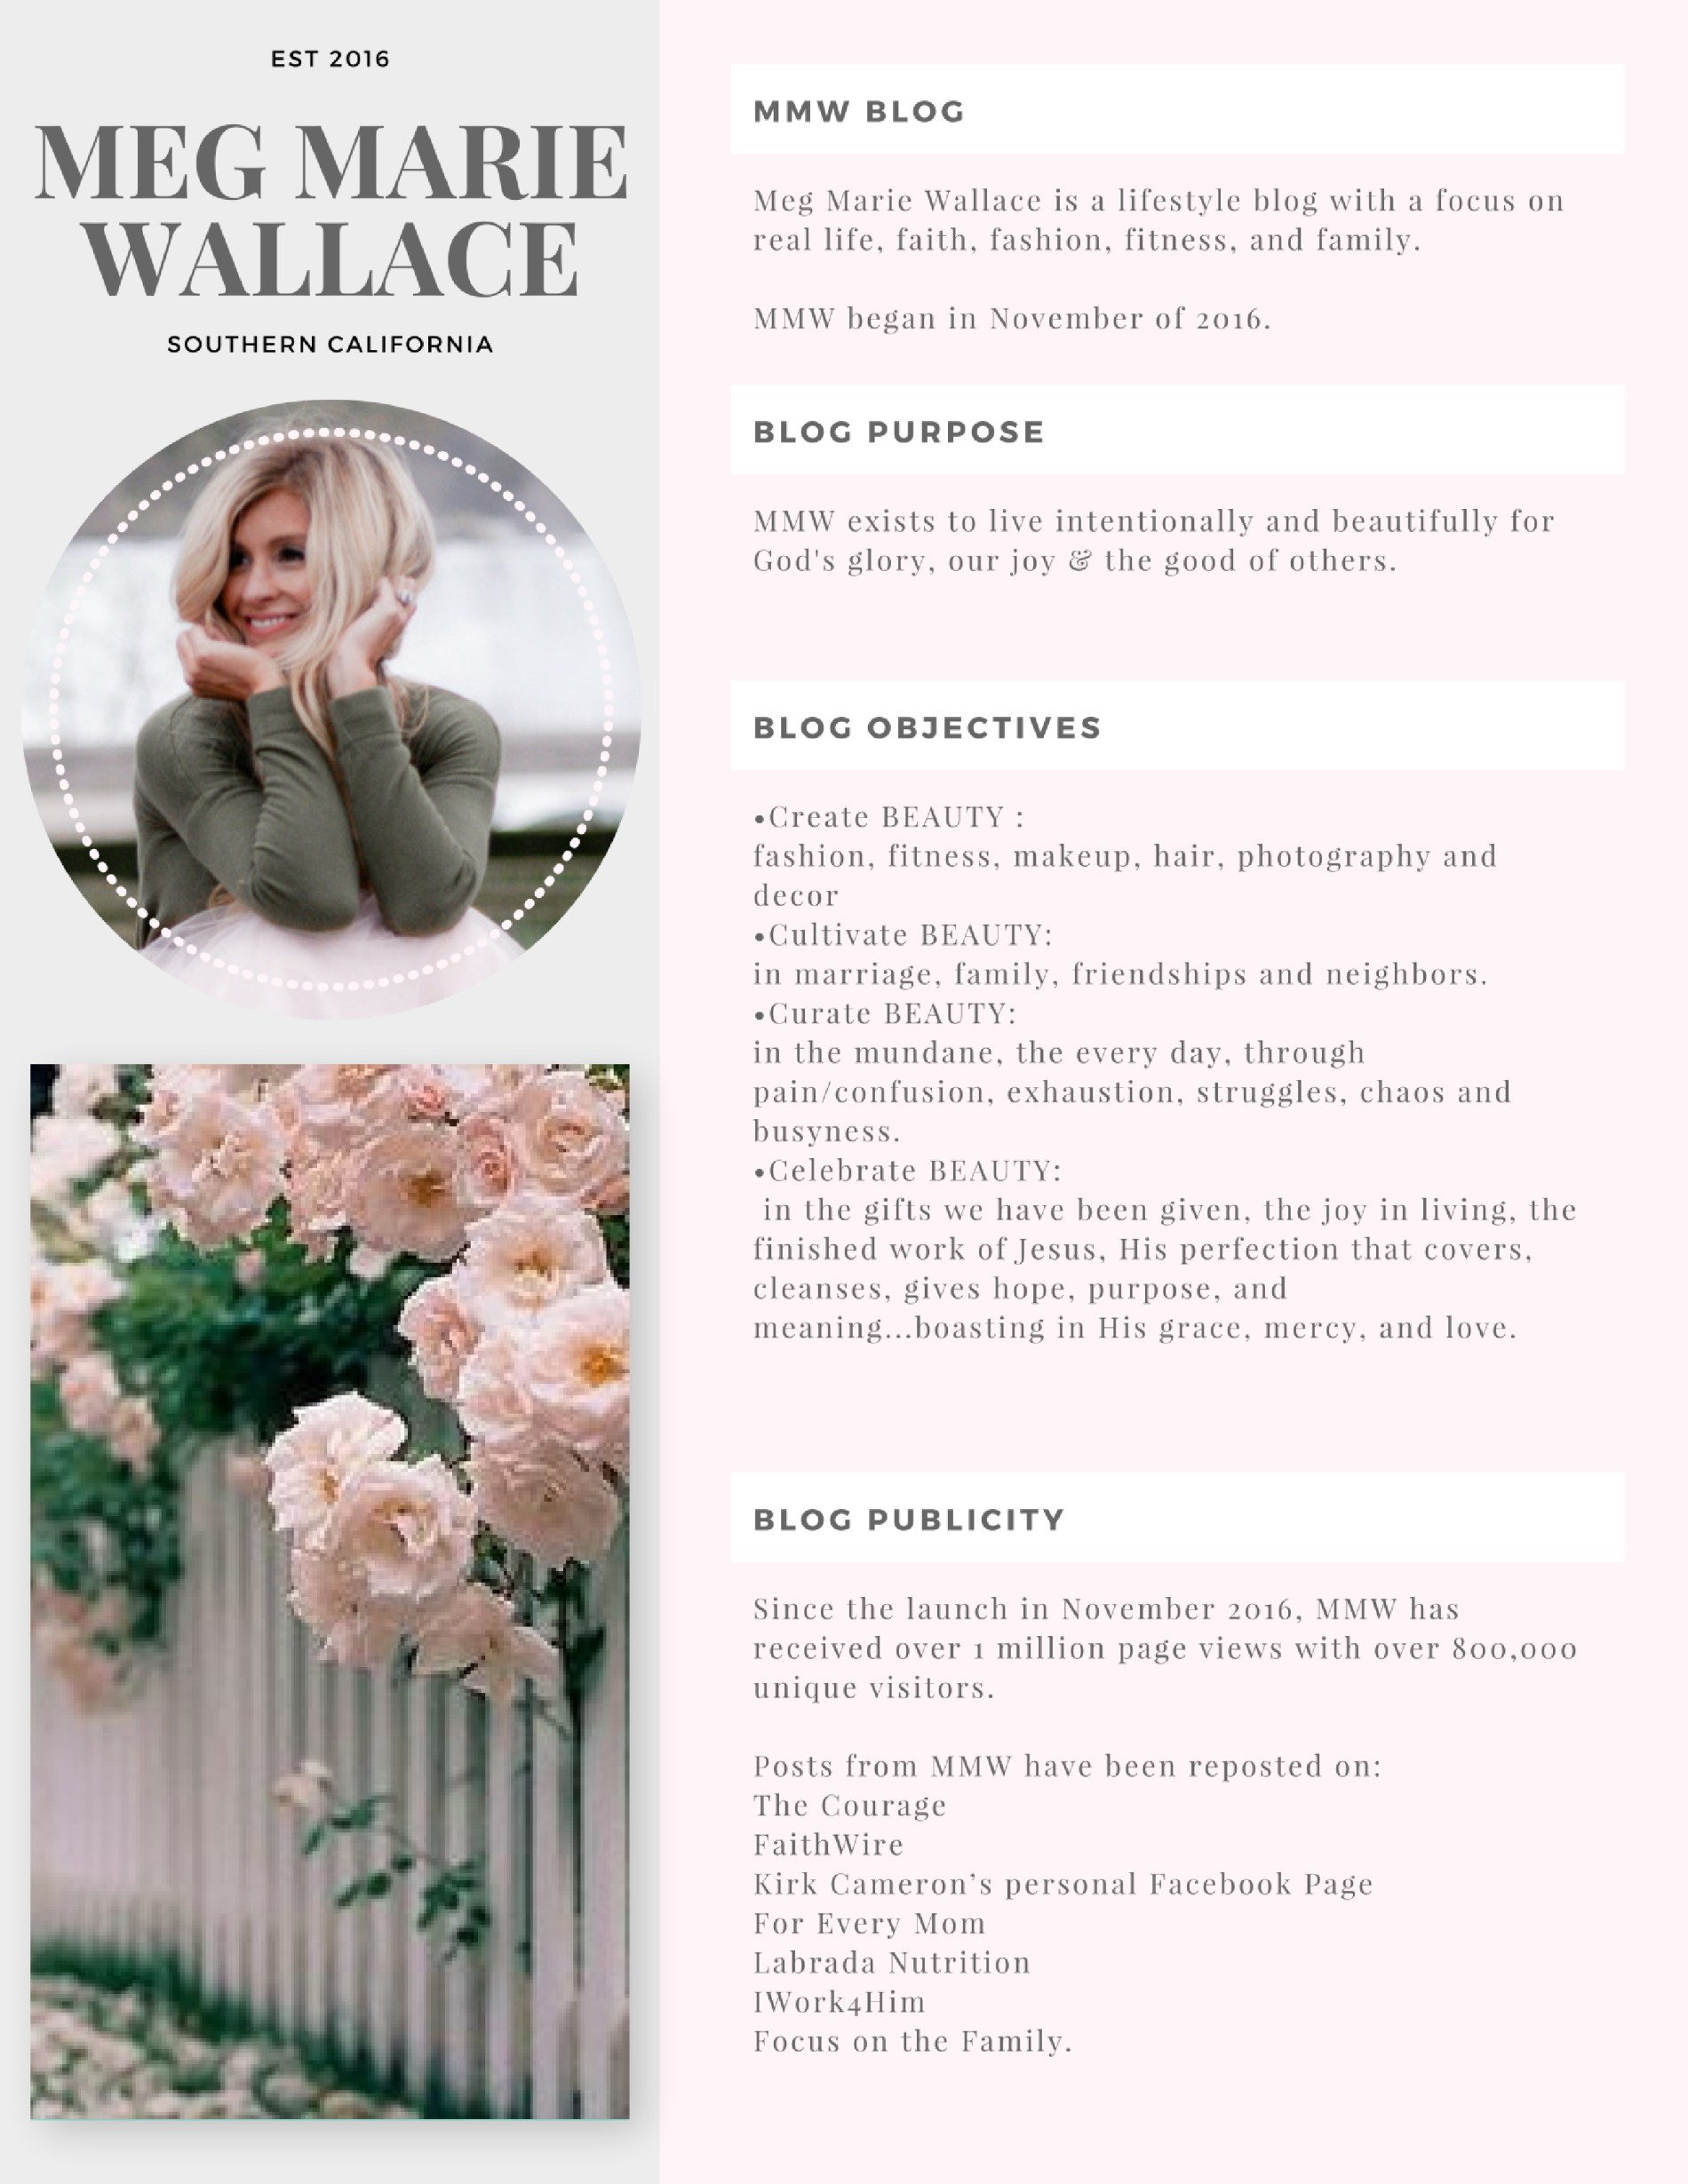 Meg Marie Wallace media pages